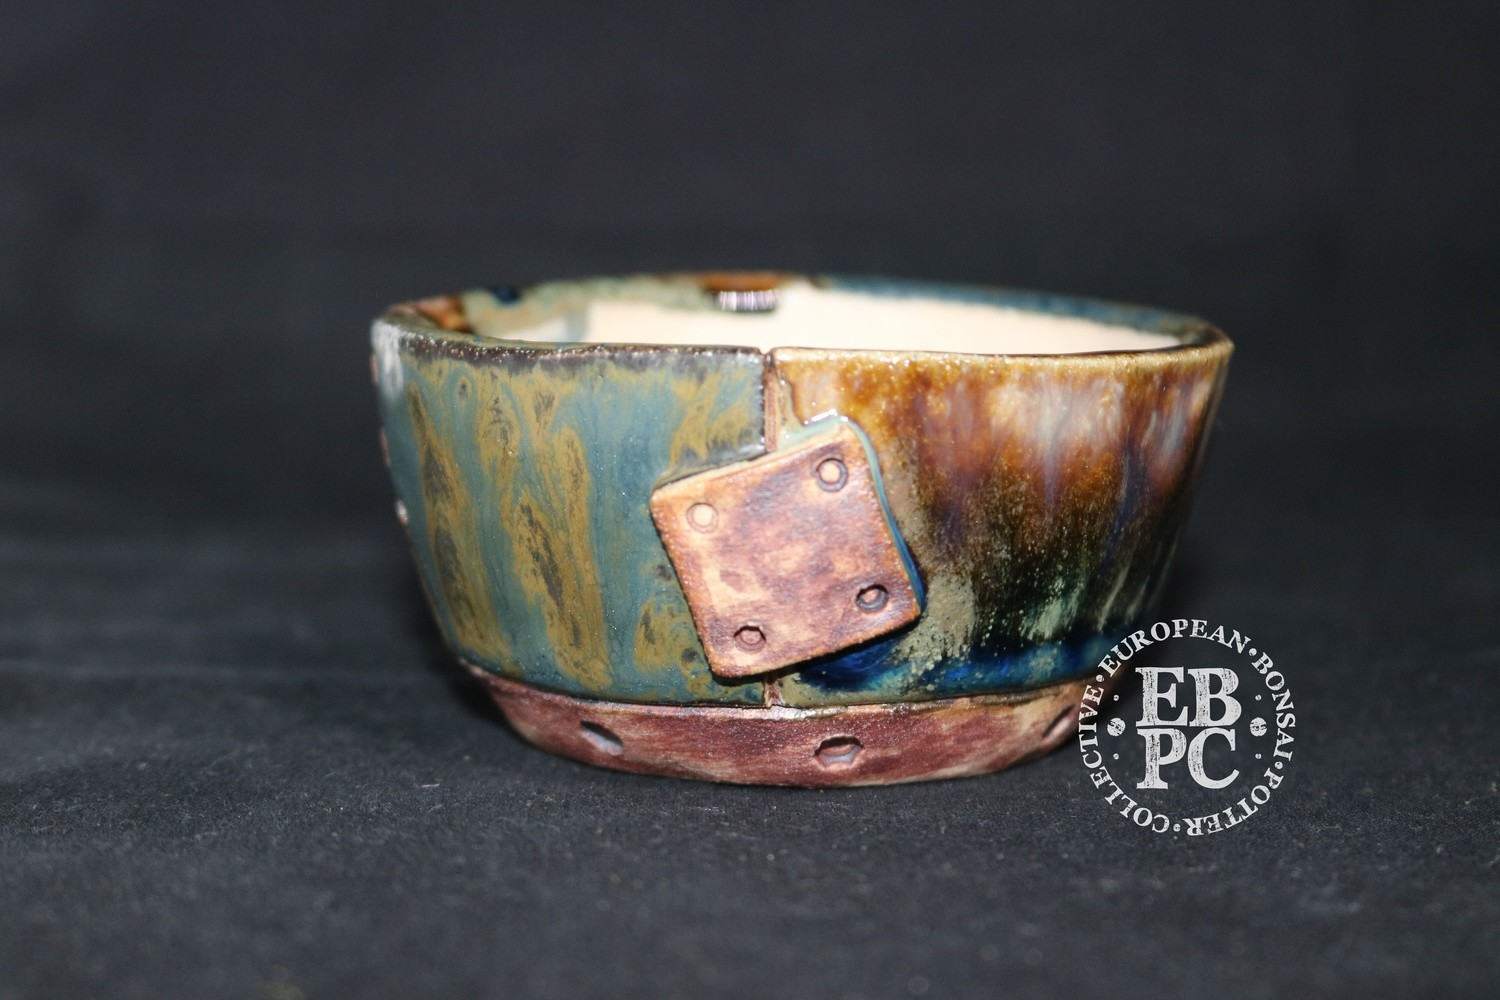 SUTEKI - 9.1cm; Accent / mame; Patch and rivet design; Round; Glazed; Browns; greens, blue; EBPC Dual Stamped Piece; Simon Haddon